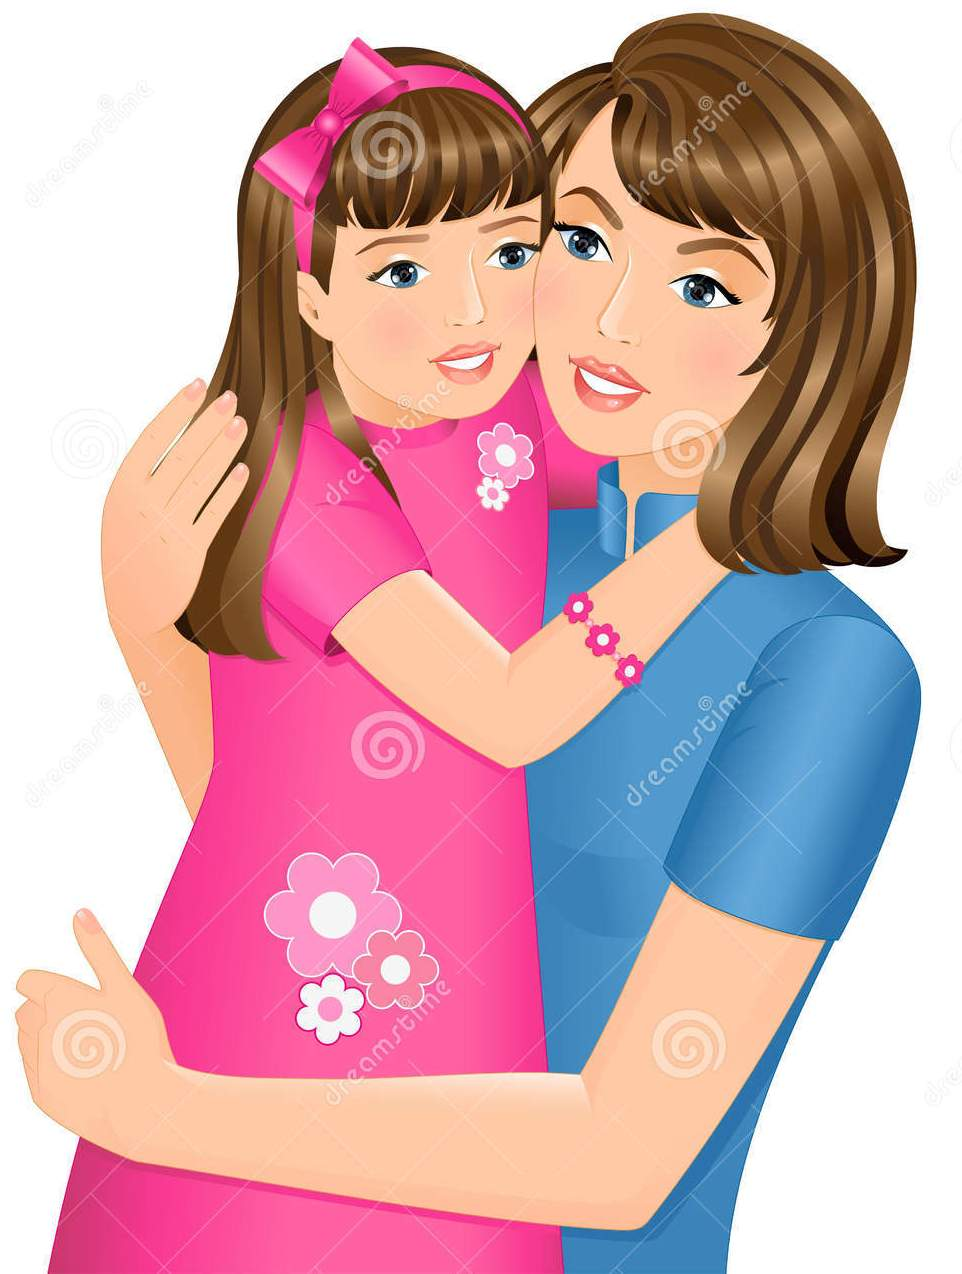 daughter-hugging-her-mother-25006056.jpg - 103.00 KB